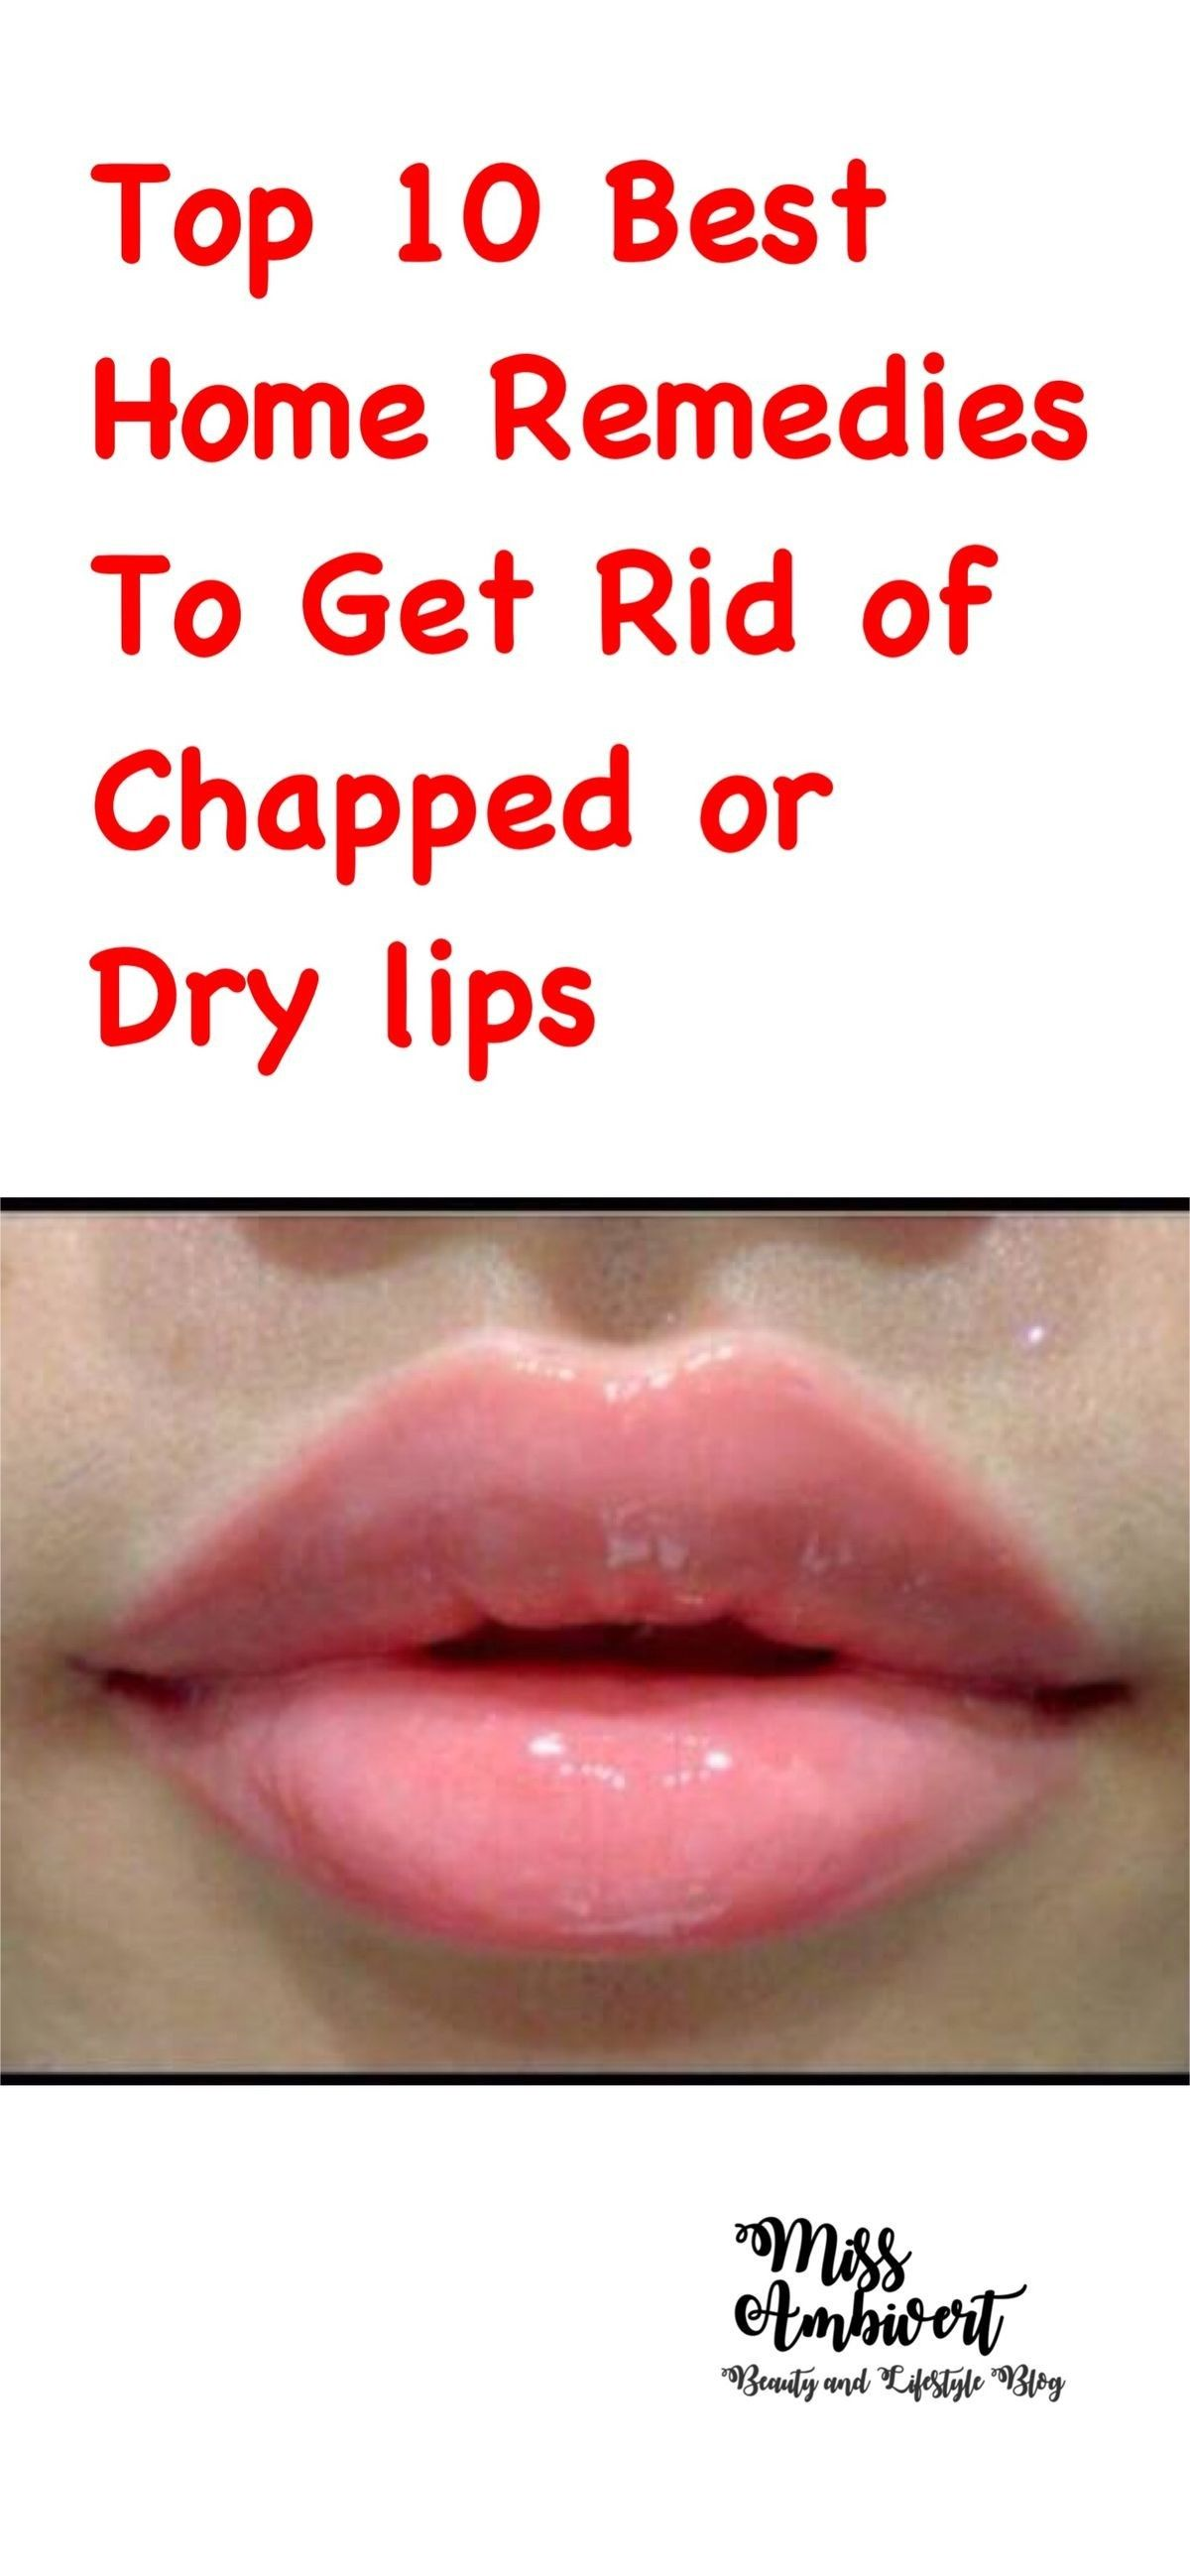 Chapped lips or cracked lips is a condition developed